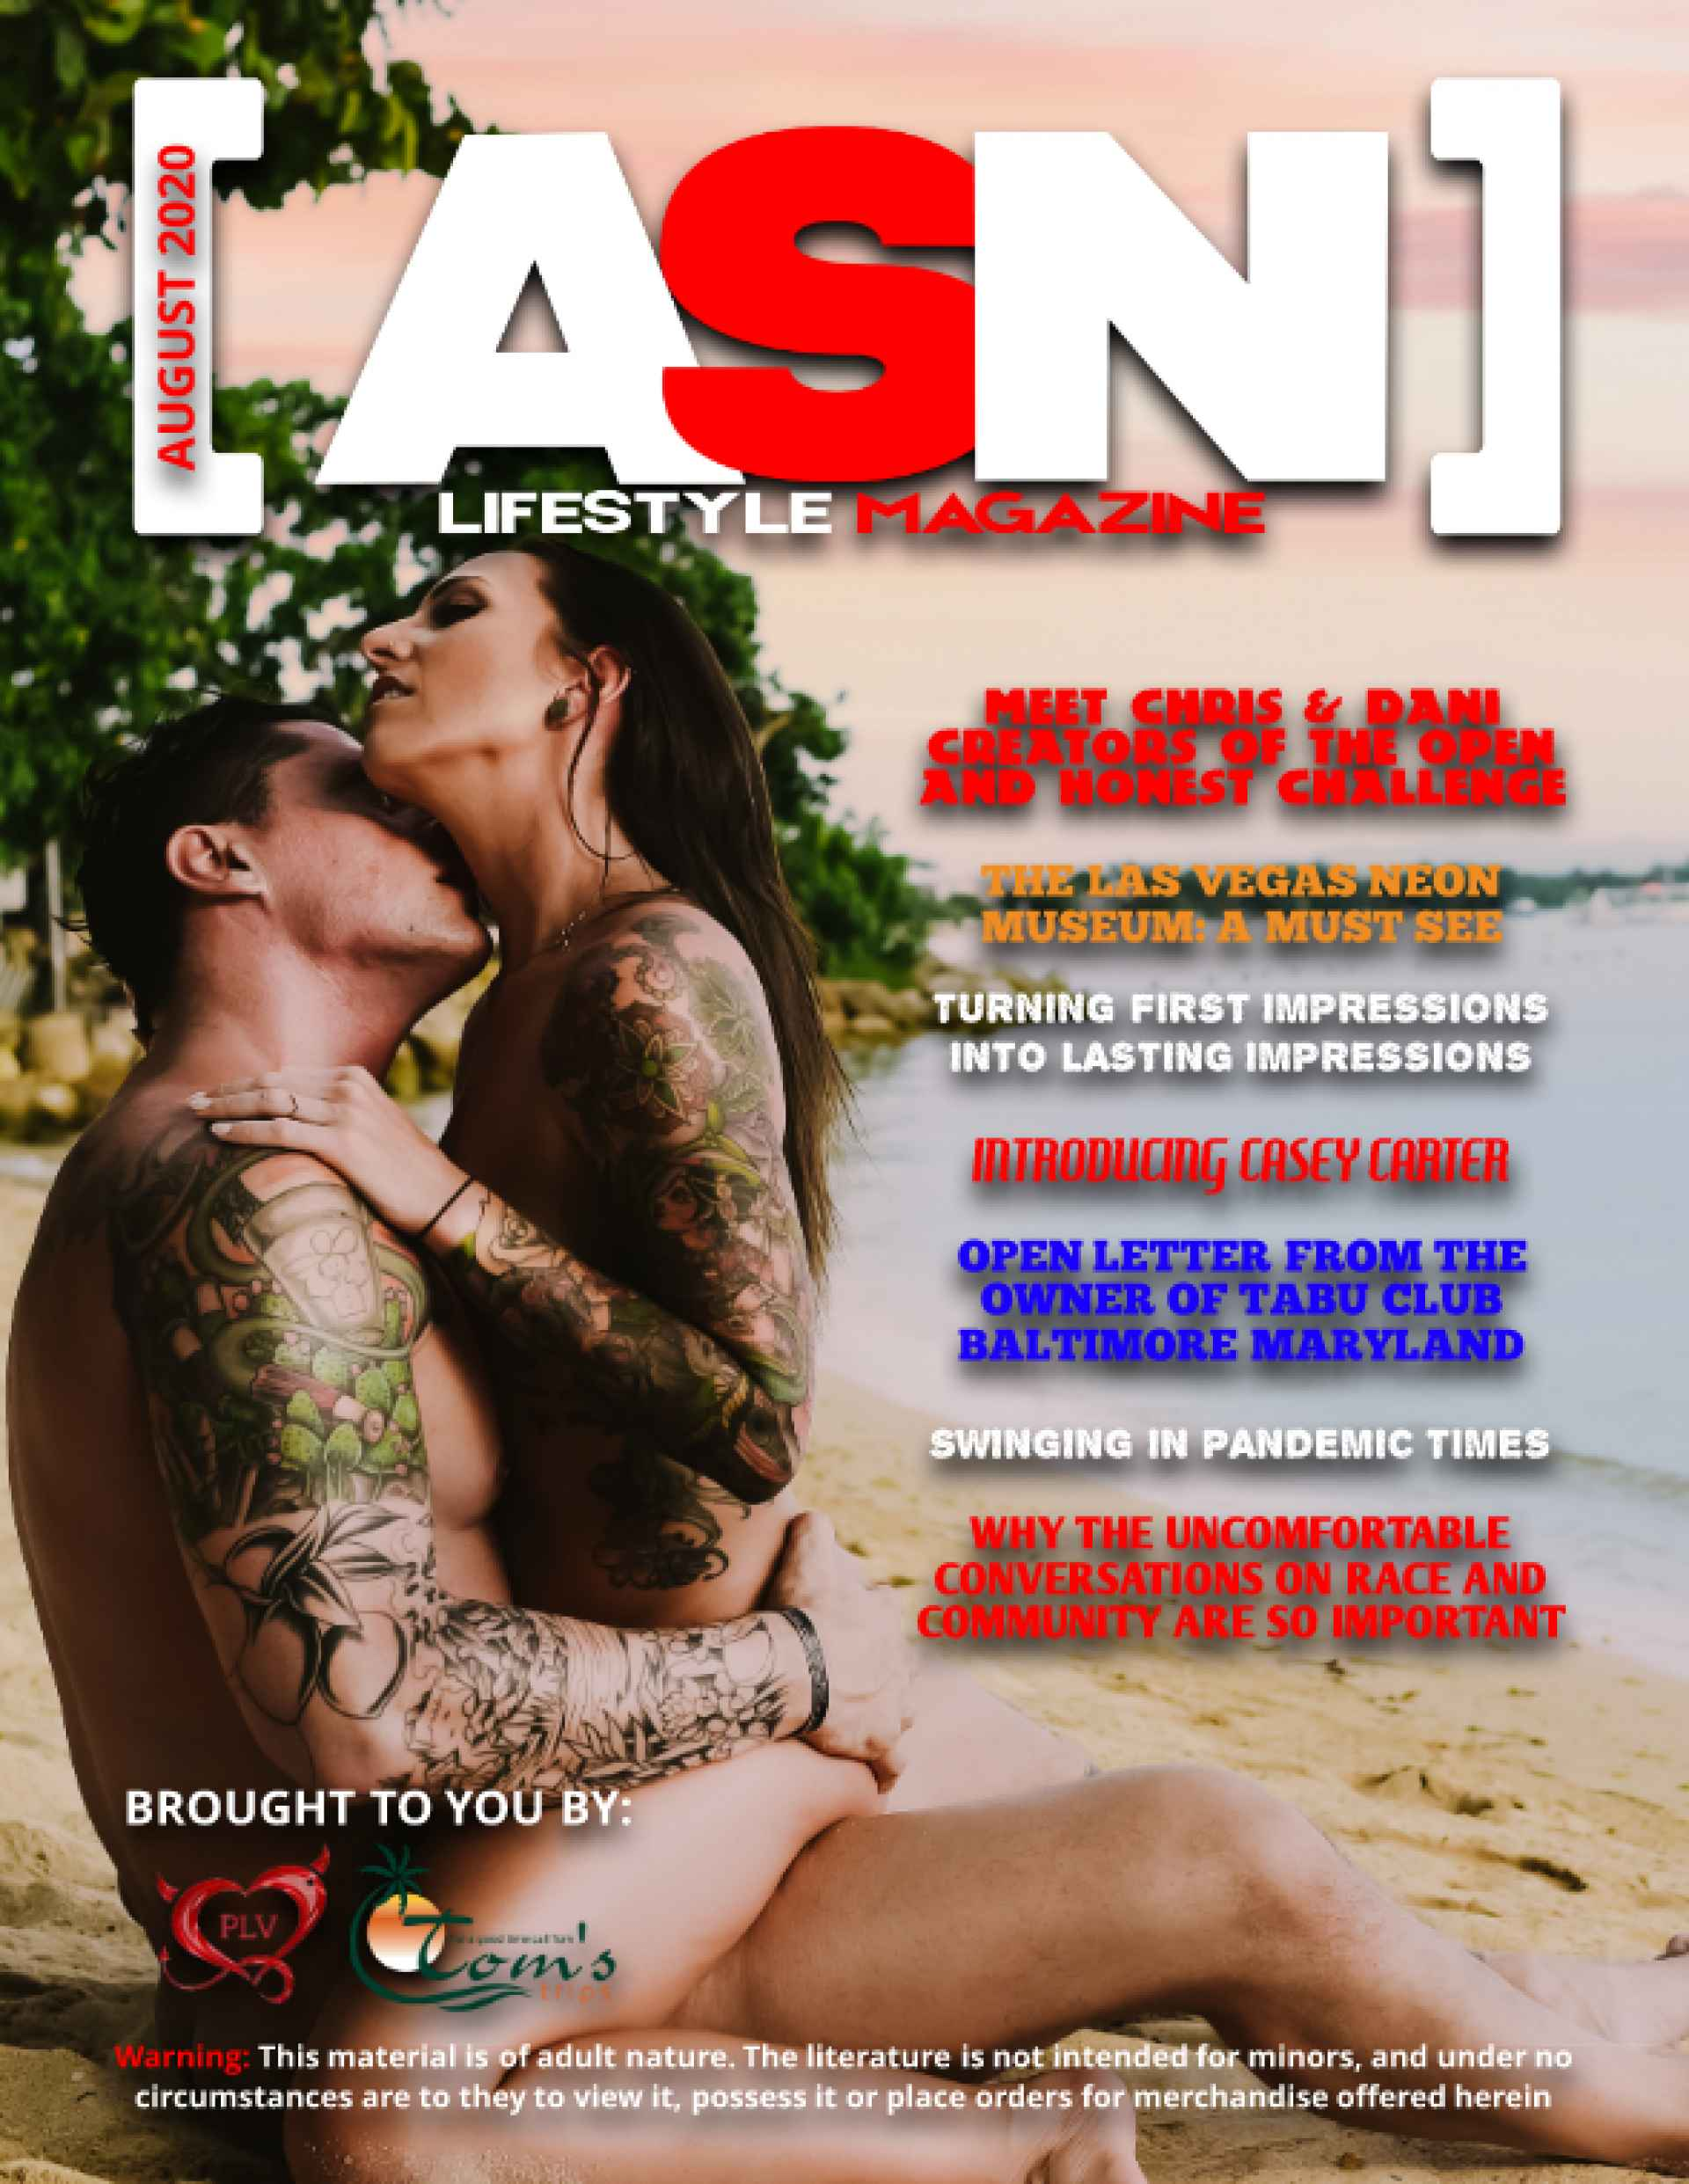 ASN Lifestyle Magazine August 2020 Cover Swingers NonMonogamy Open Honest Challenge